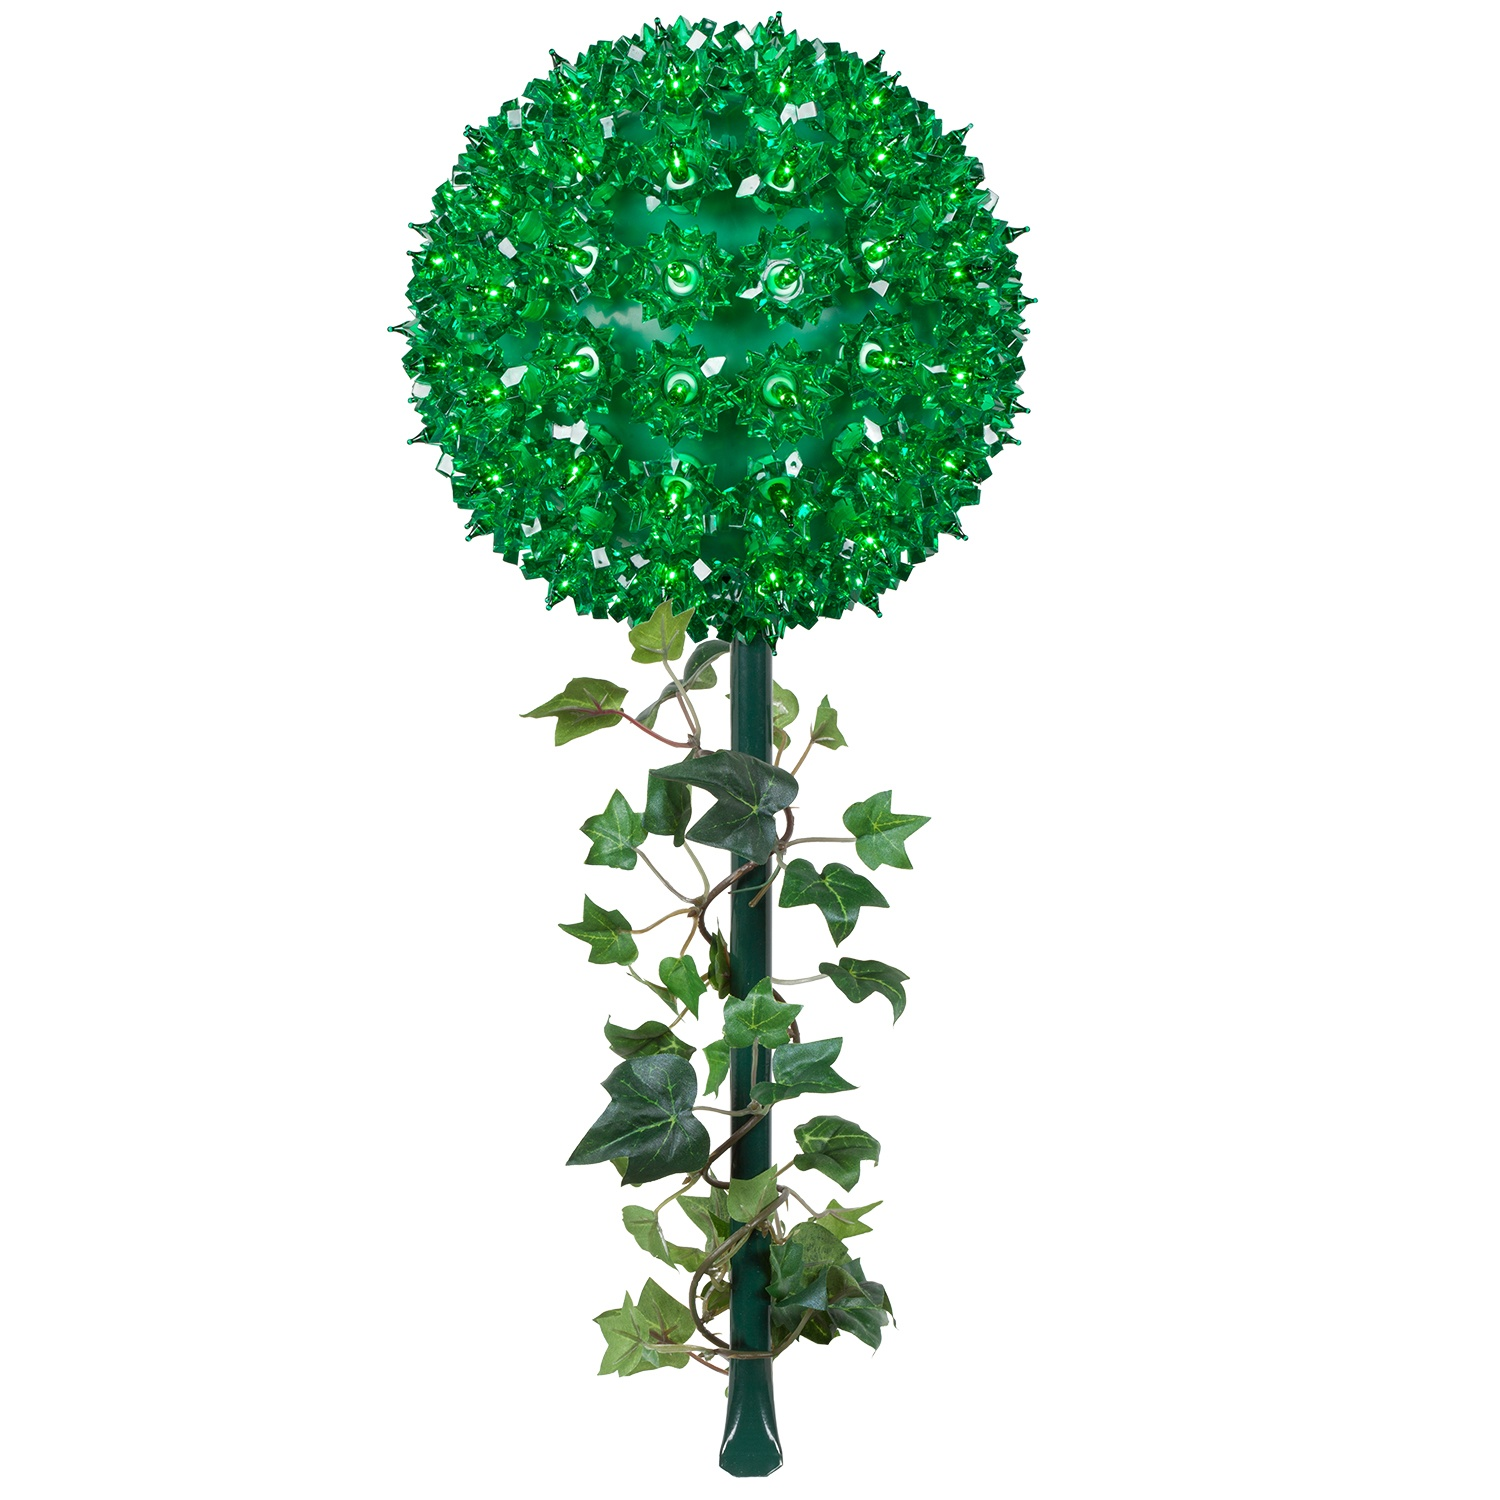 Green Starlight Sphere with Stake